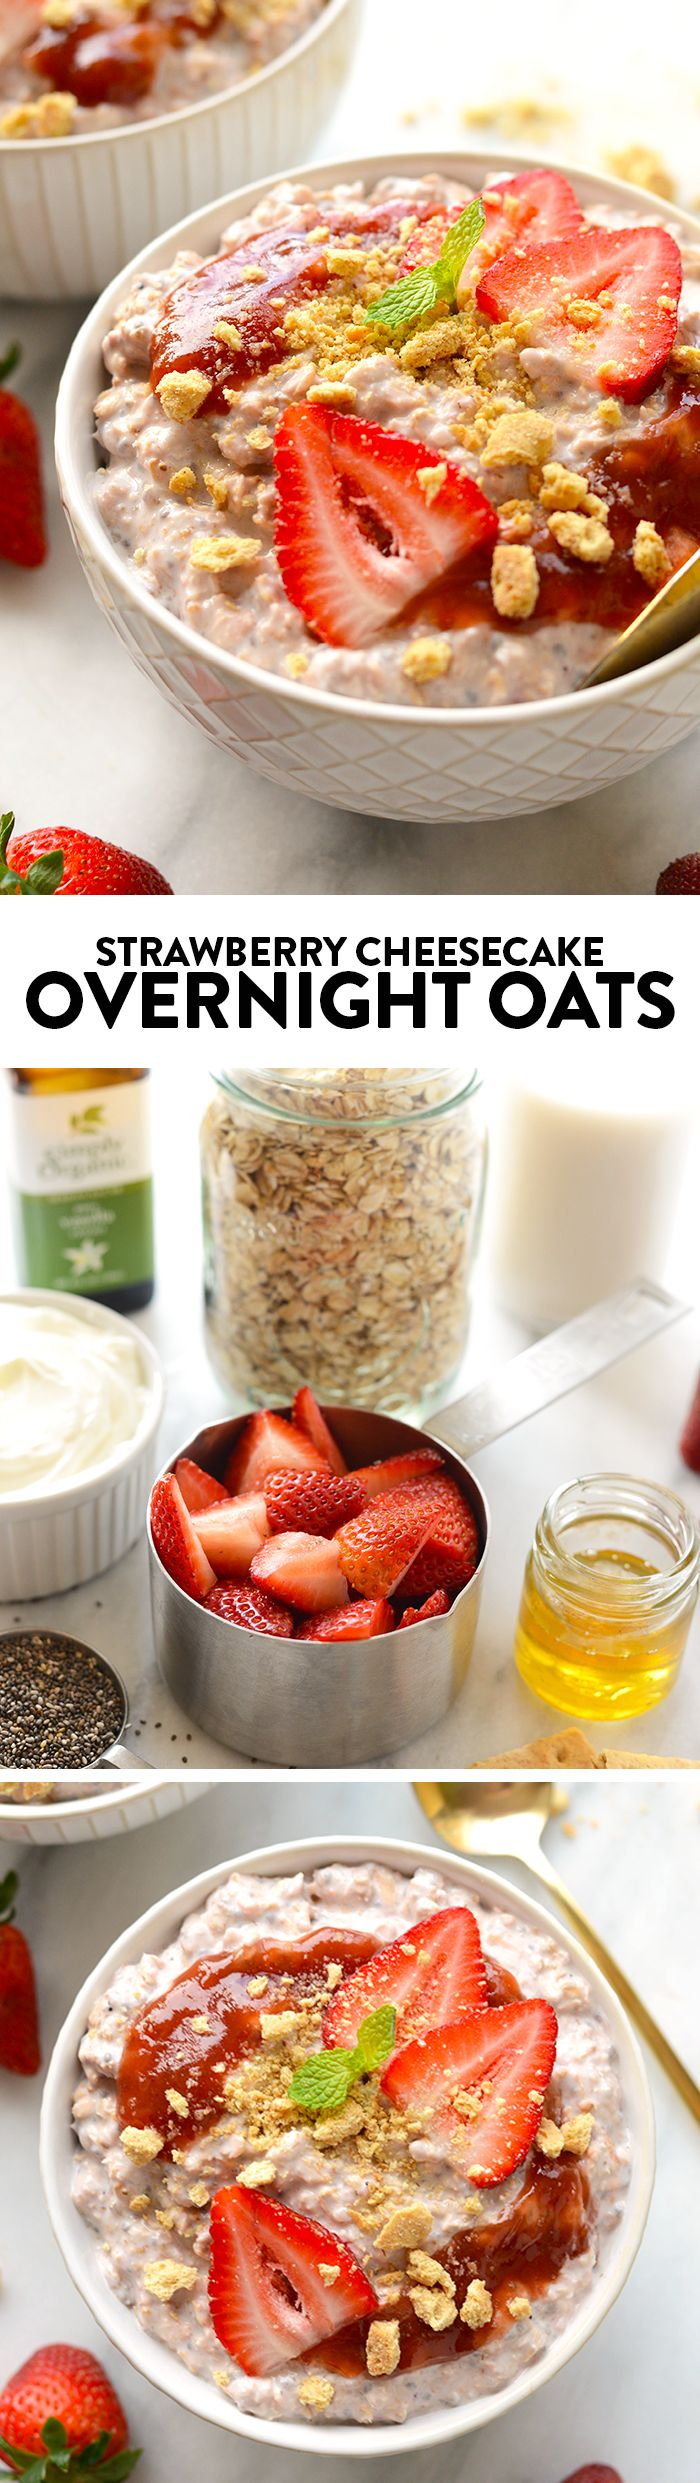 Dessert for breakfast? YES! Make these healthy strawberry cheesecake overnight oats for a healthy and filling breakfast!